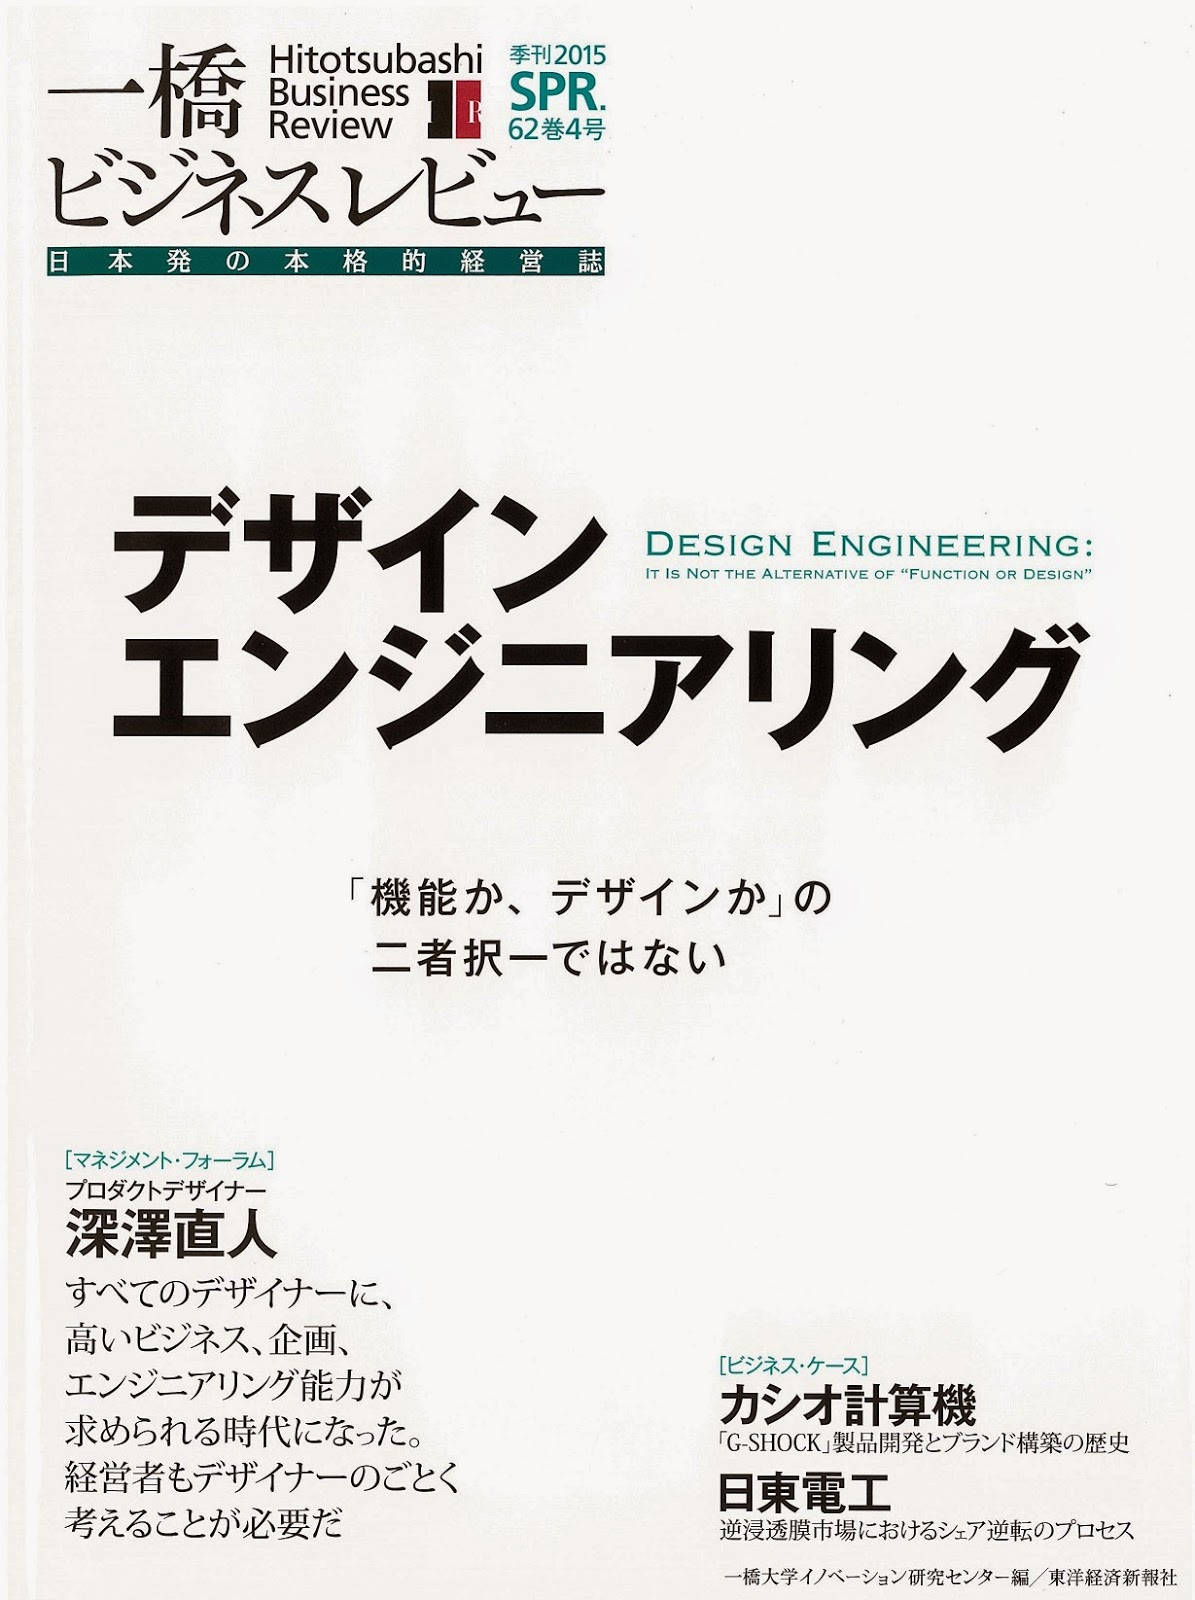 Business Review Vol.62 No. SPR. 2015